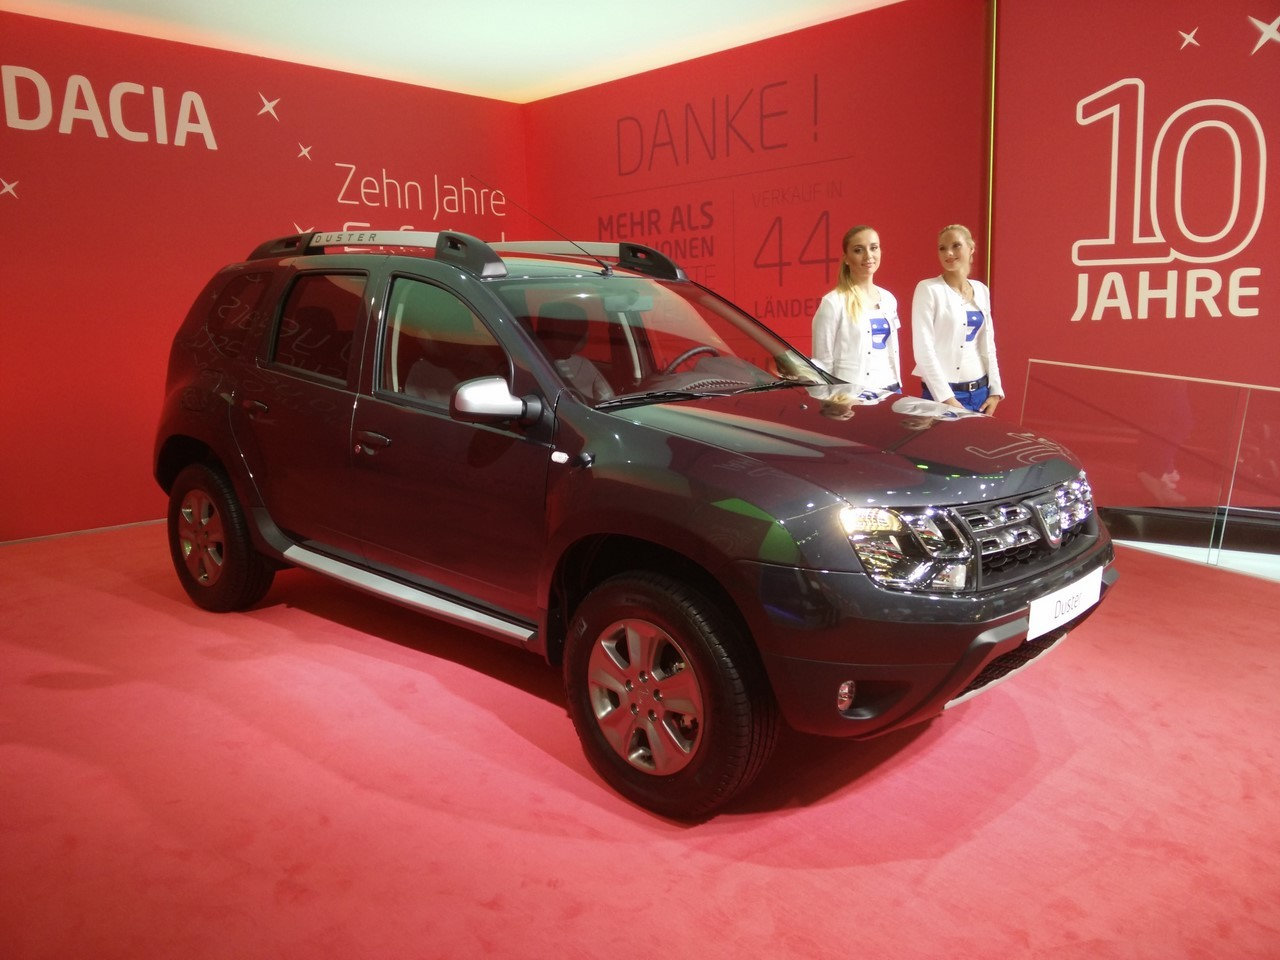 dacia duster 2016 un nouveau duster au salon de francfort 2015 l 39 argus. Black Bedroom Furniture Sets. Home Design Ideas